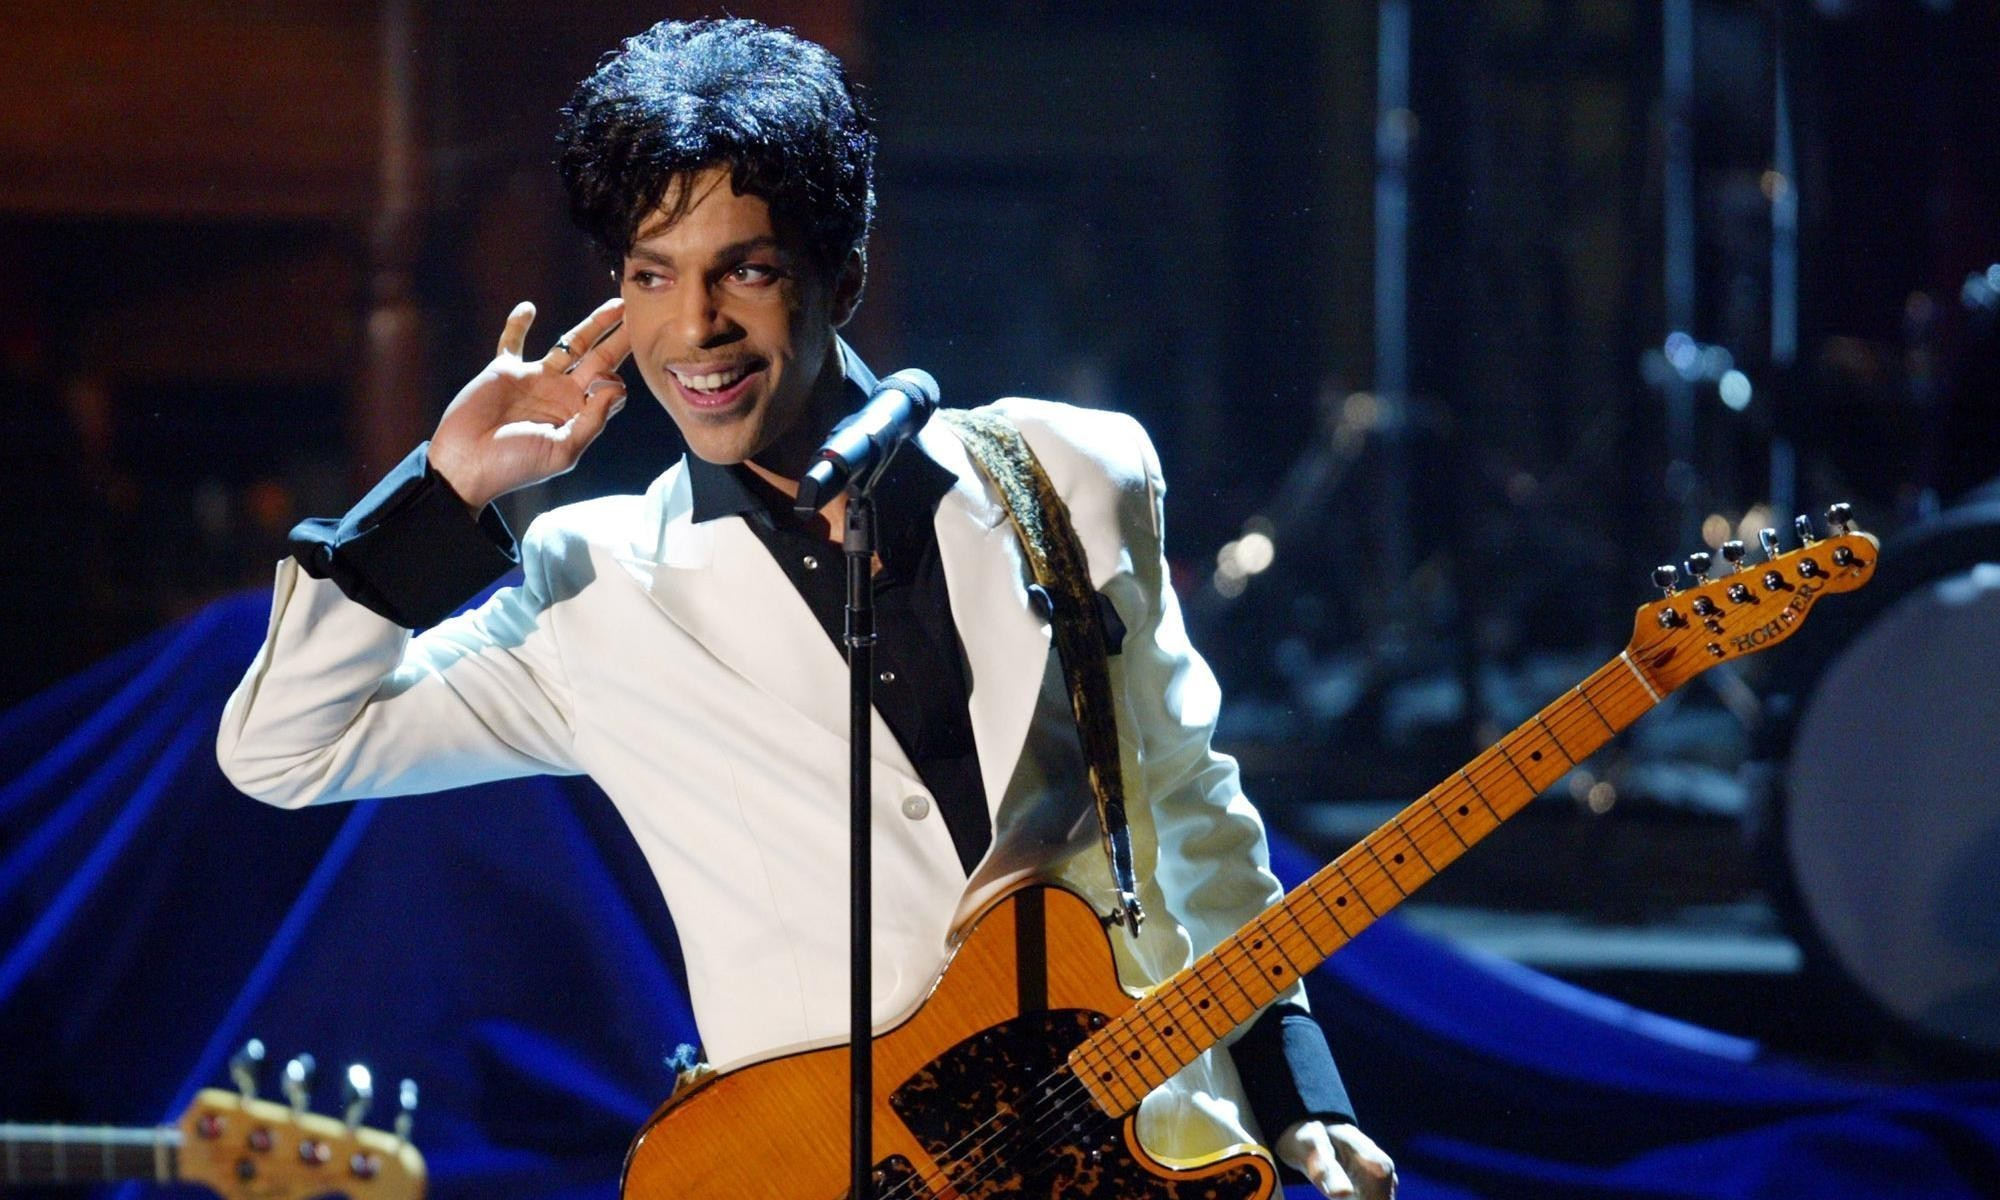 Prince performing While My Guitar Gently Weeps at Rock and Roll Hall of Fame induction – video